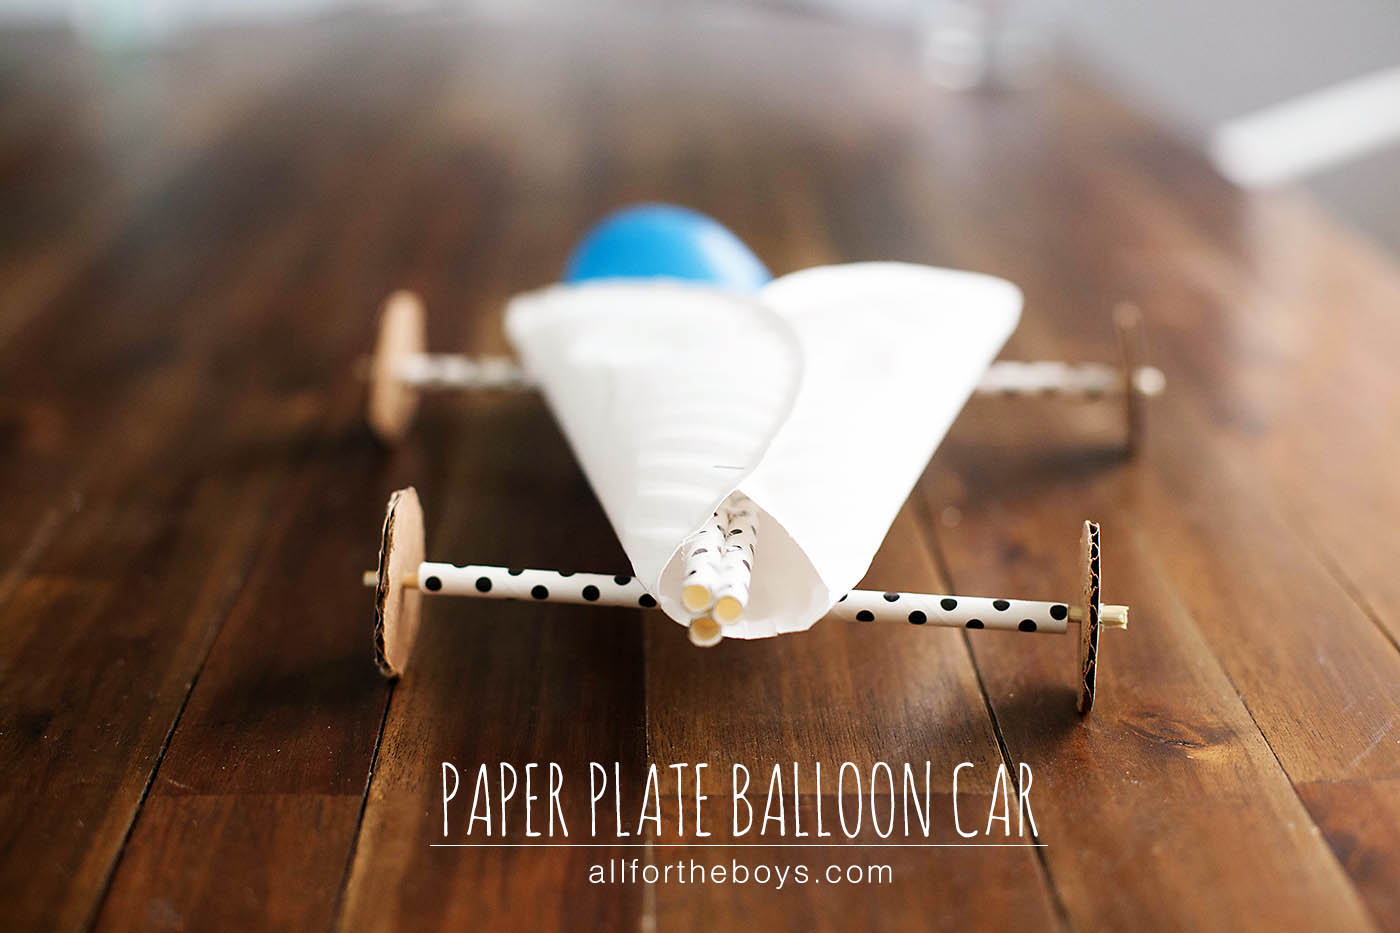 & Paper Plate Balloon Car u2014 All for the Boys